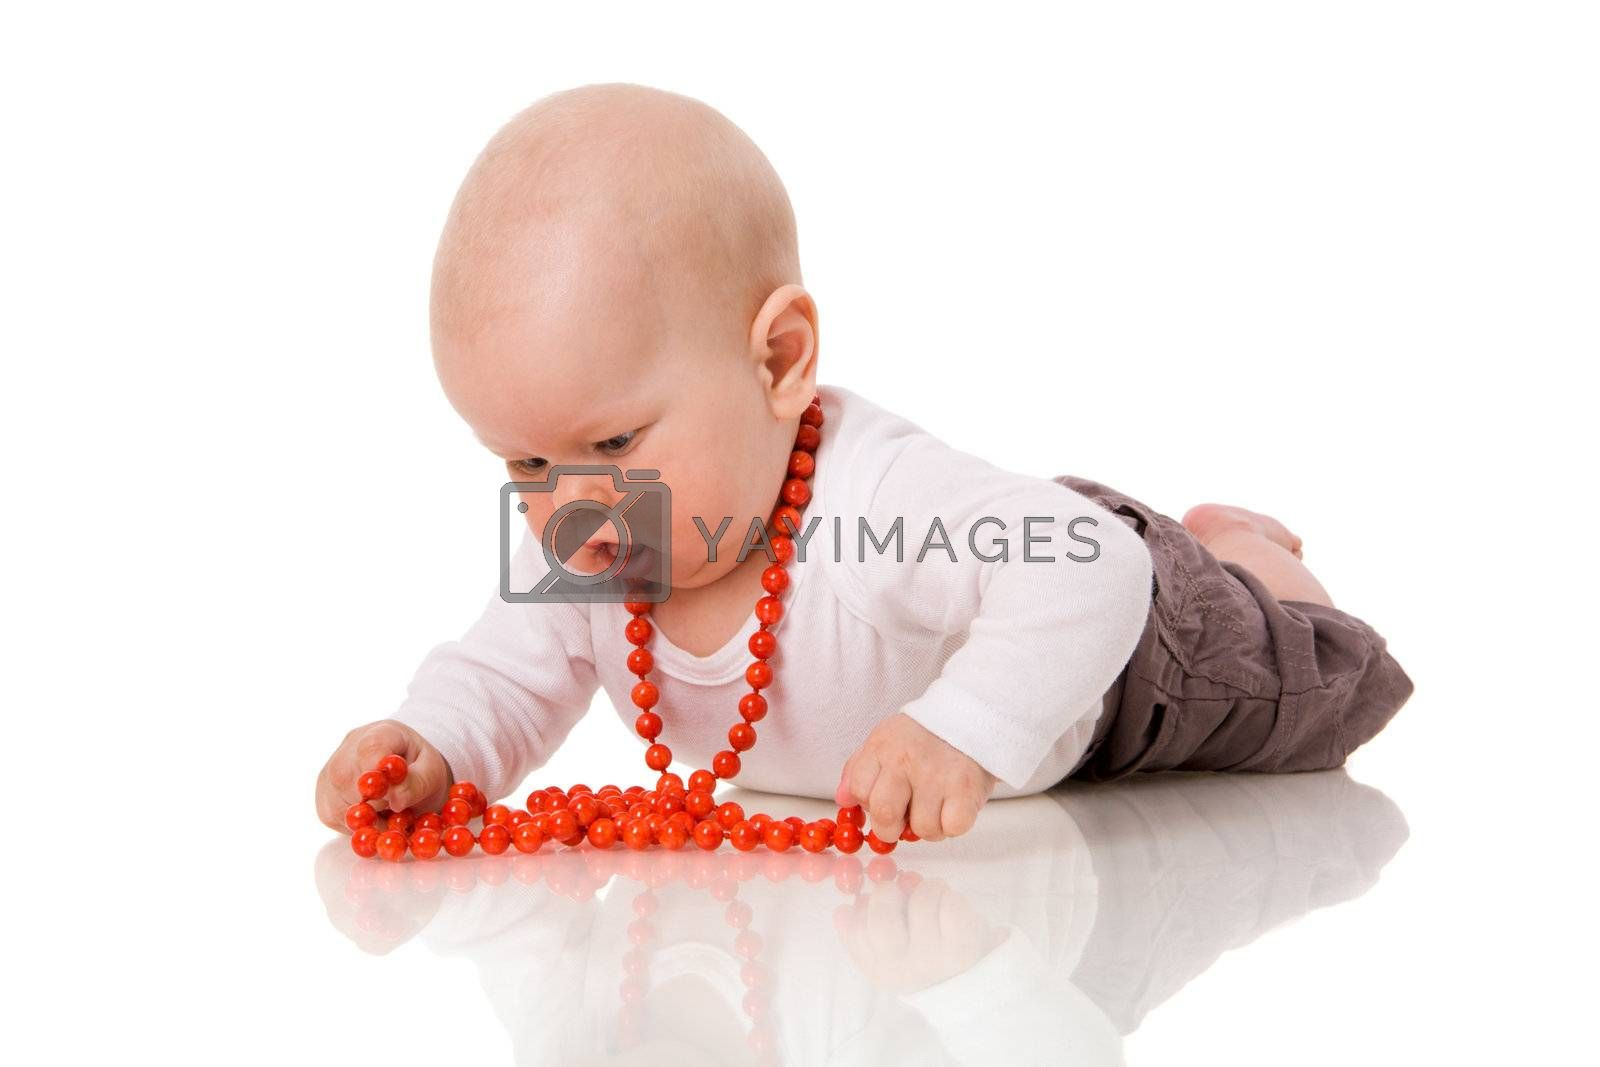 Baby lying on floor playing with beads isolated on white